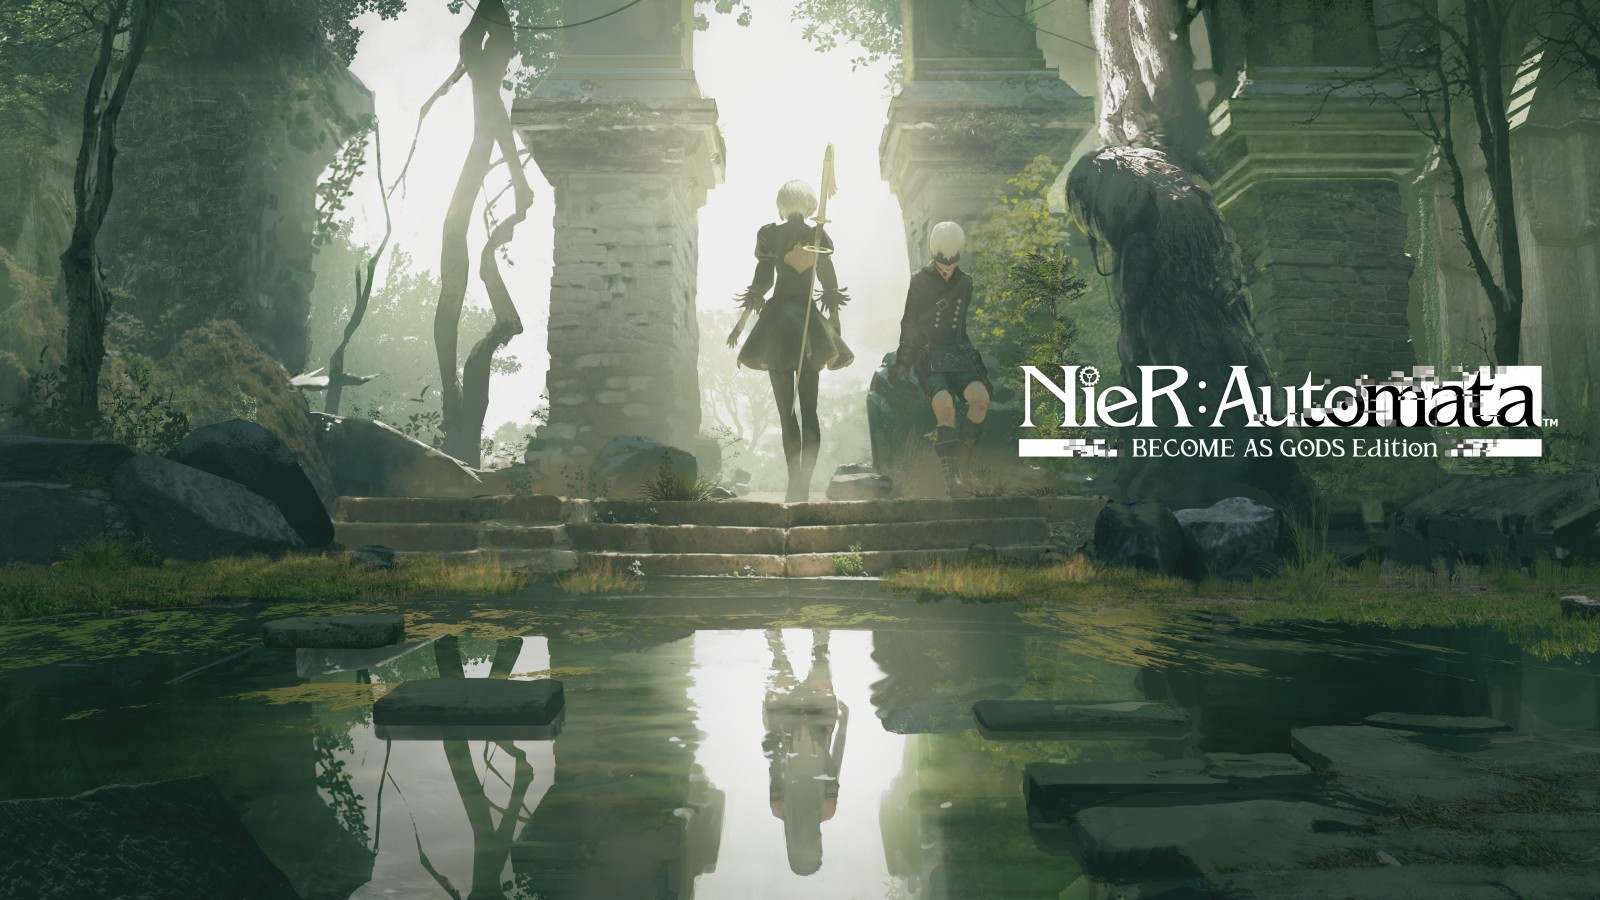 Wallpapers 3d Abstract Black Nier Automata Become As Gods Edition 4k 8k Wallpapers Hd